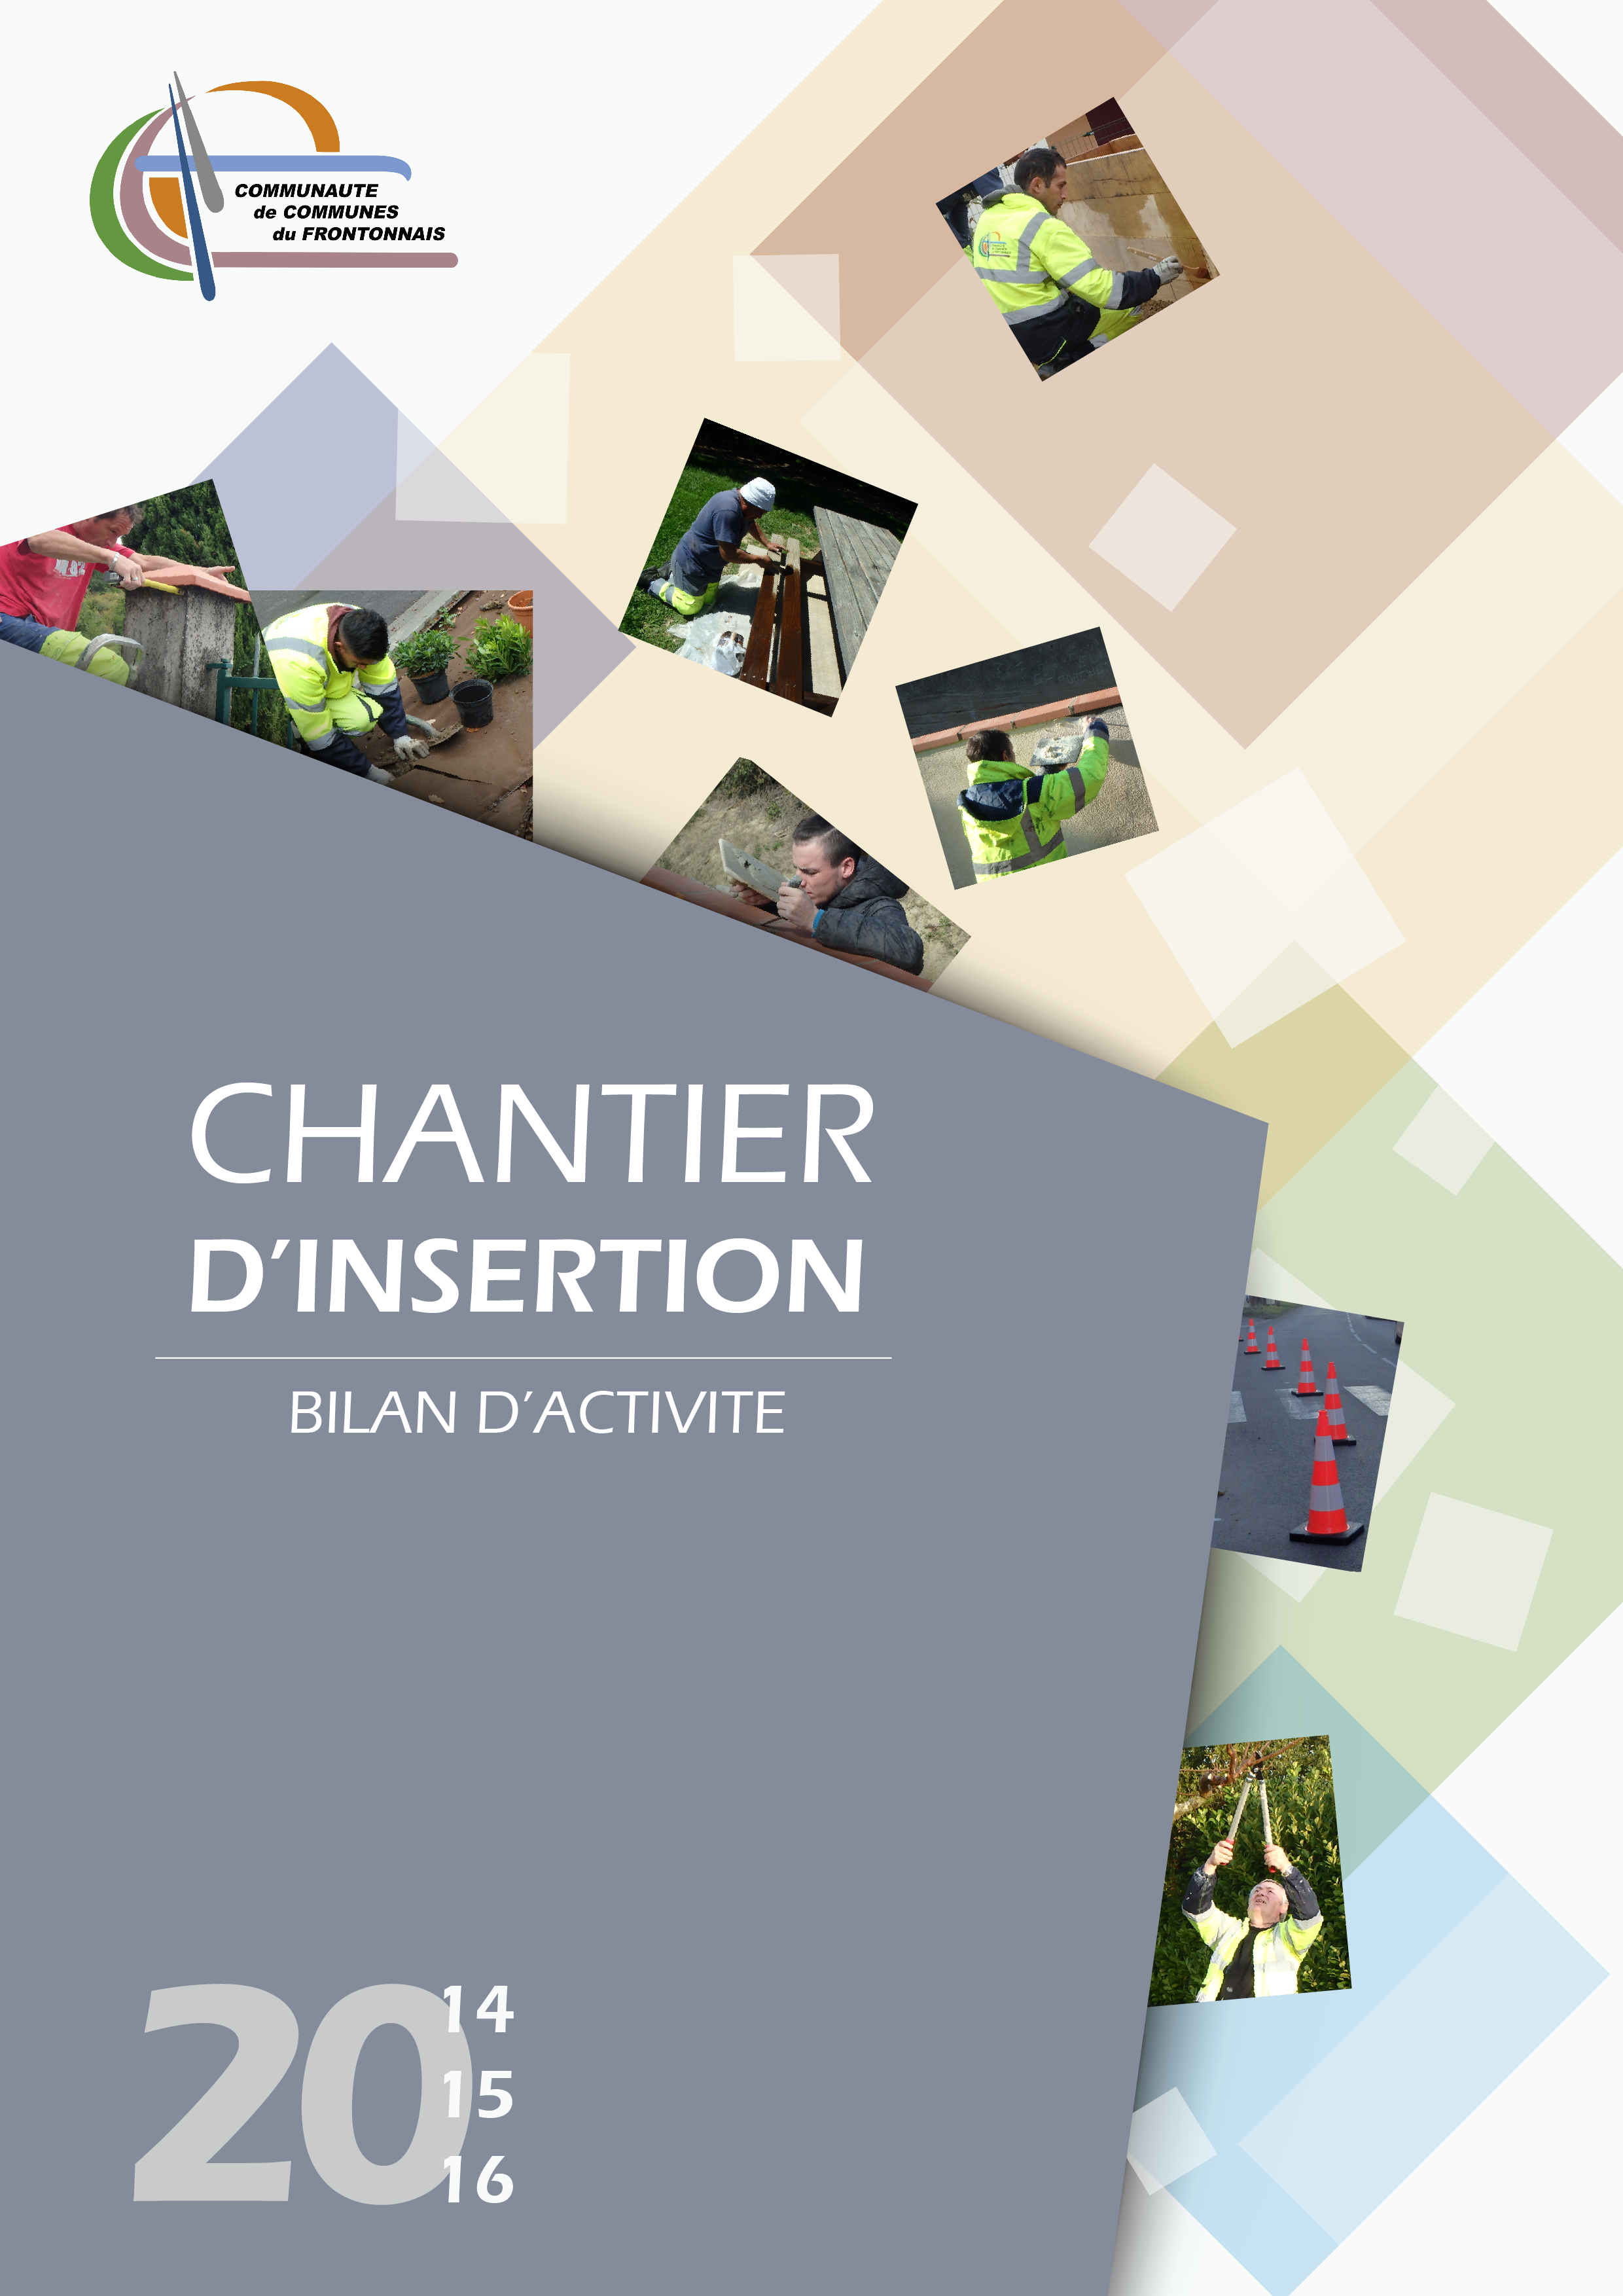 Book du chantier d'insertion 2014-2016 de la CCF